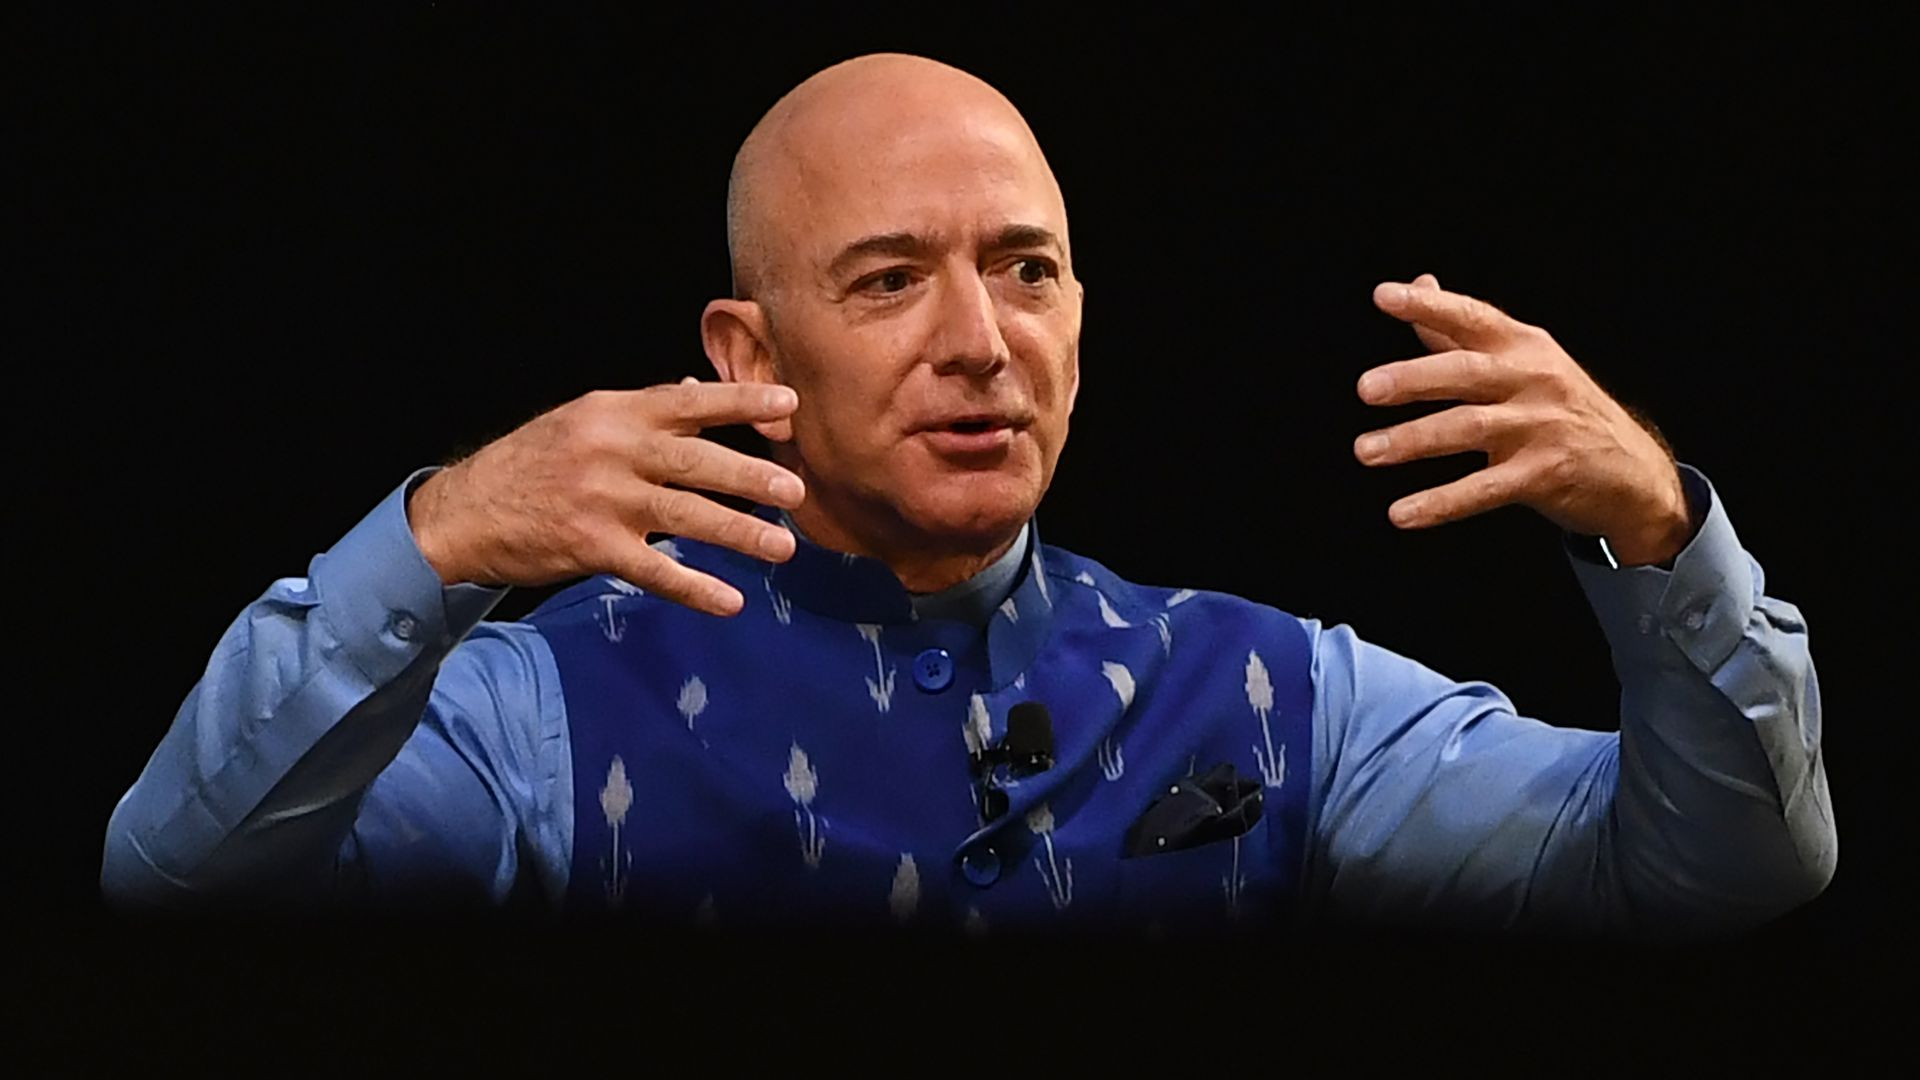 In this image, Bezos sits on stage with his hands in front of his face